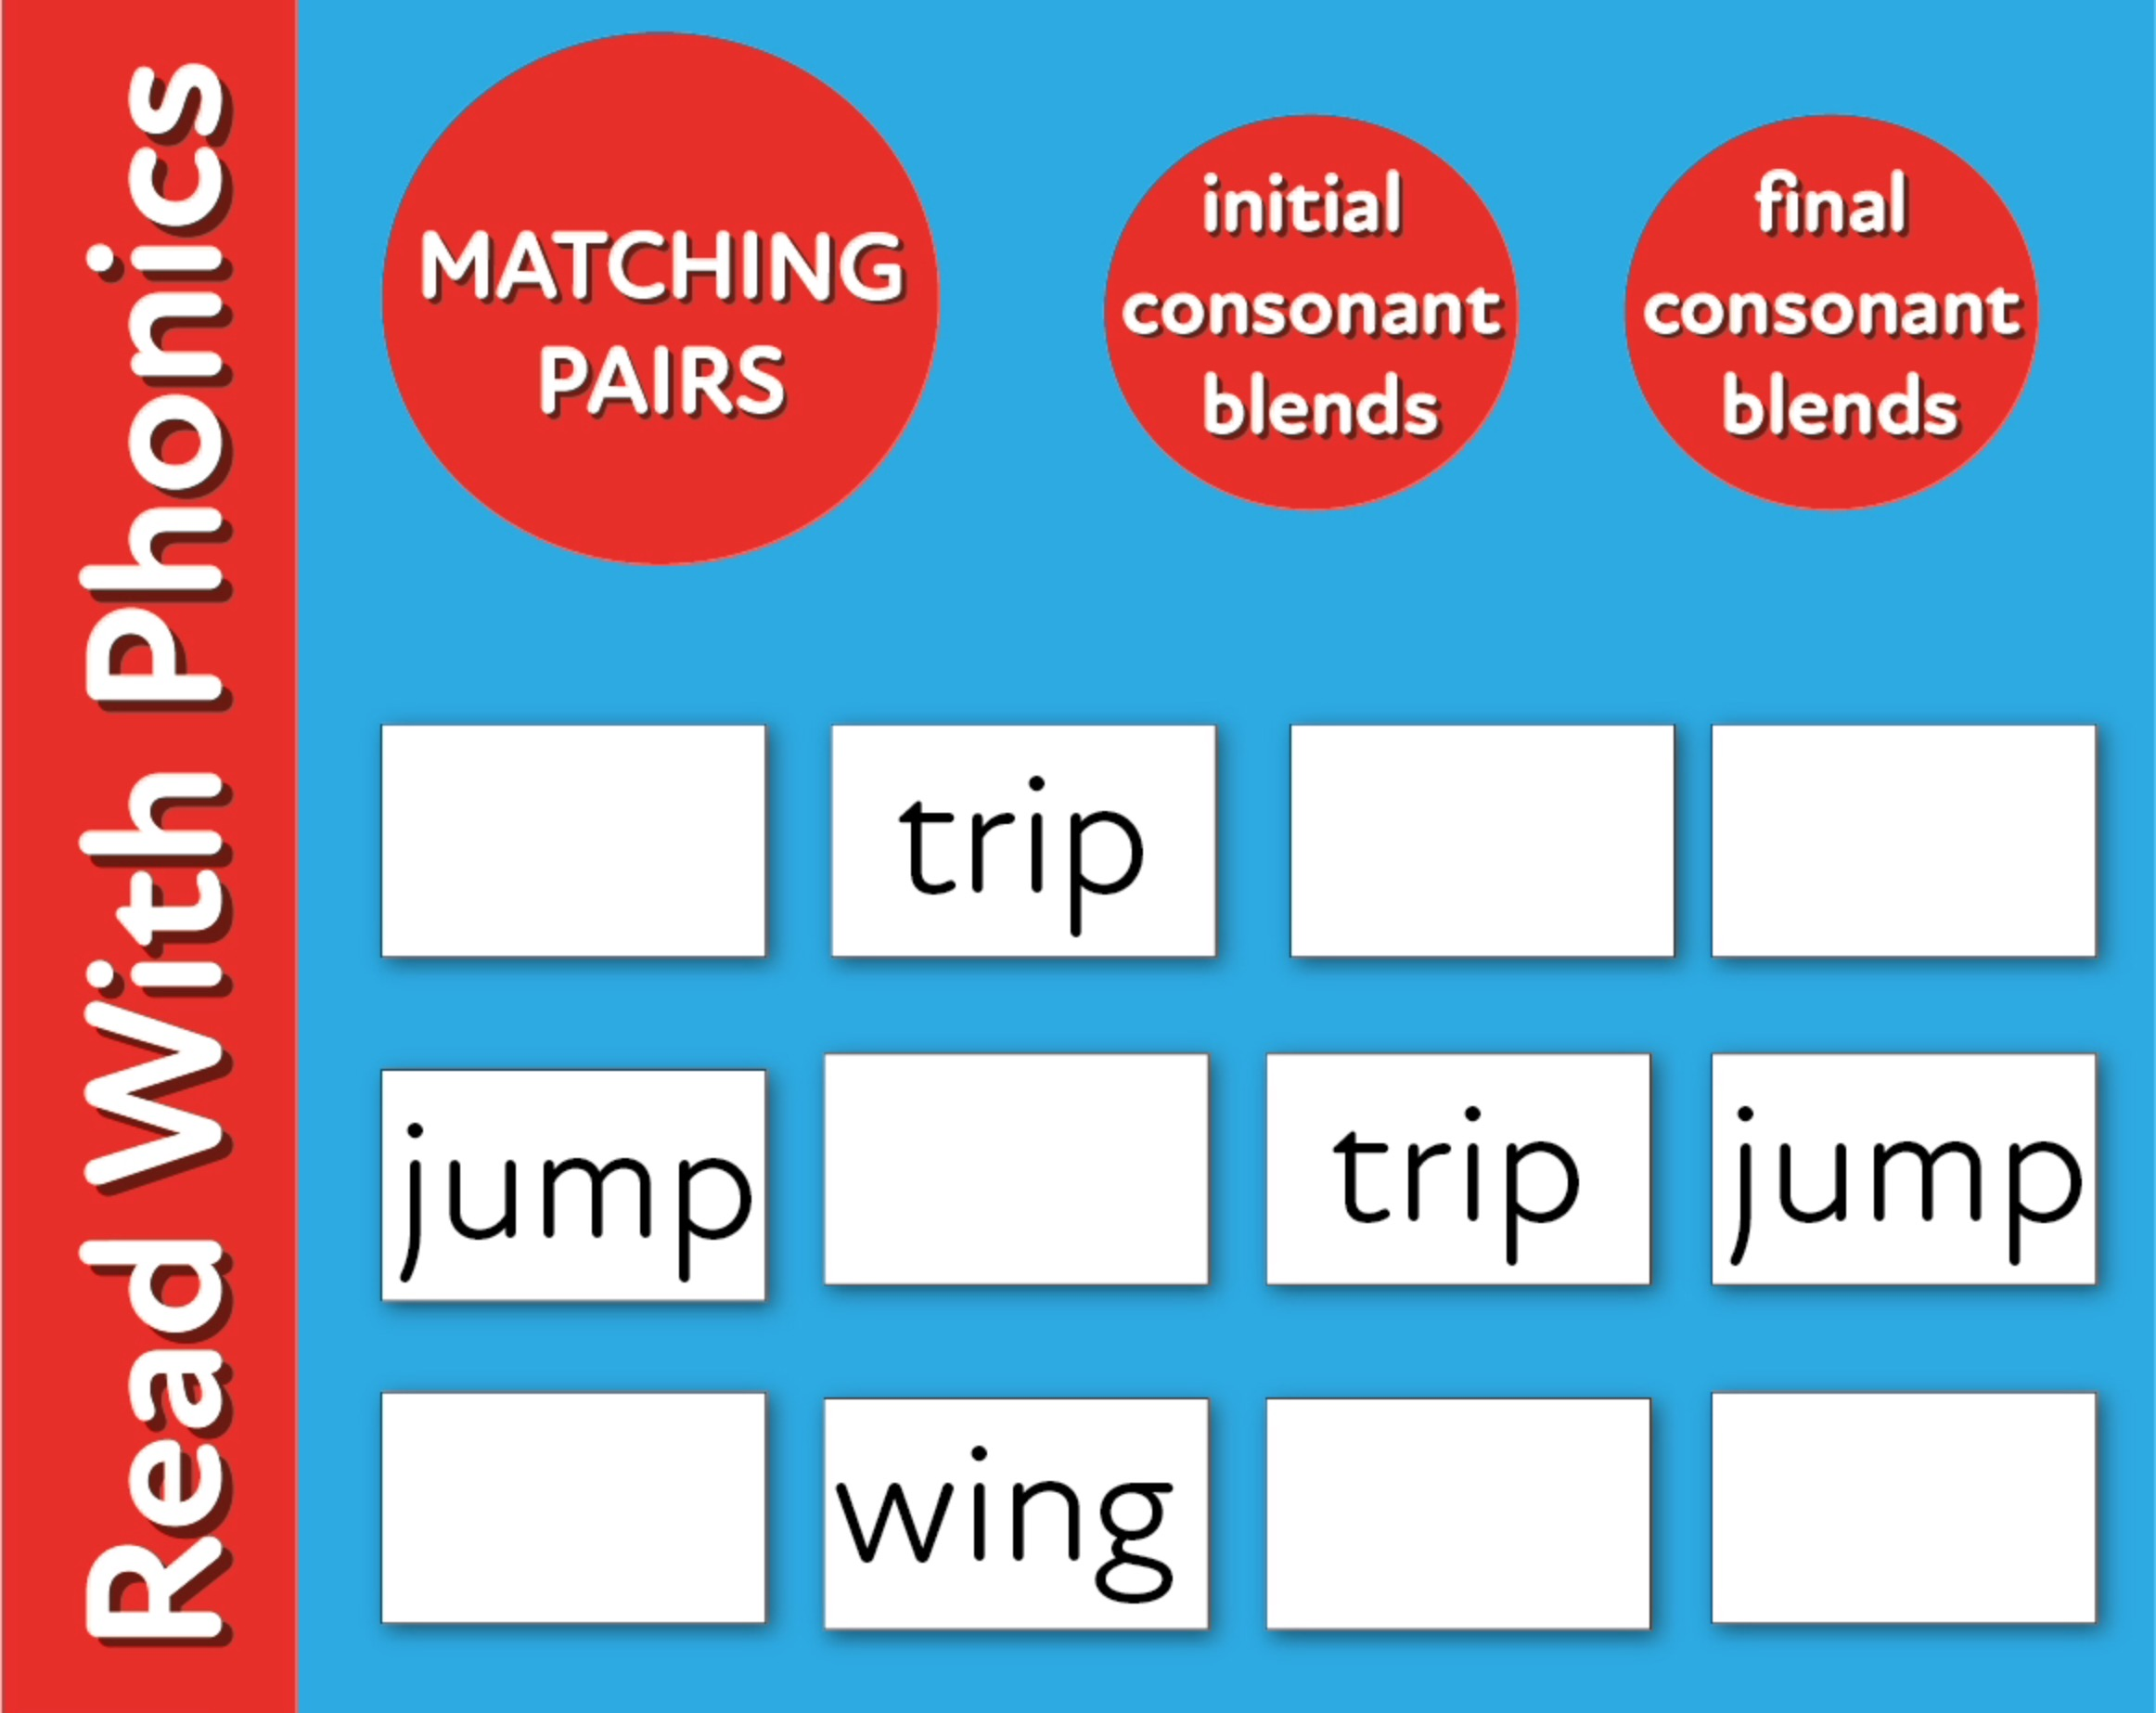 Play Initial & Final Consonant Blends Matching Pairs (3 +)